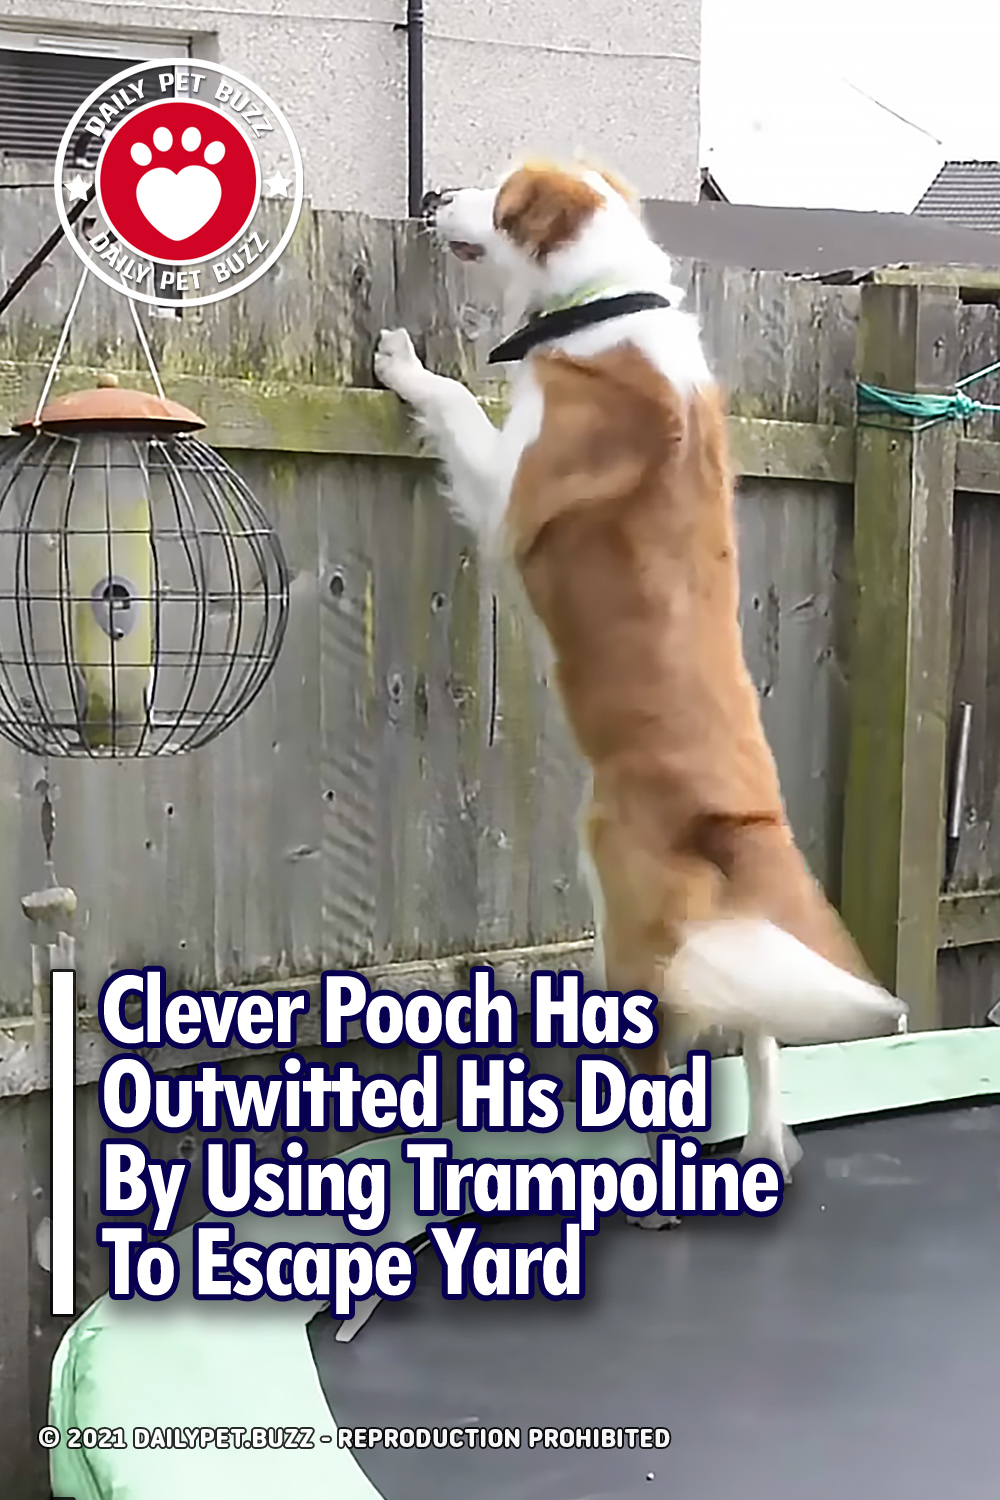 Clever Pooch Has Outwitted His Dad By Using Trampoline To Escape Yard